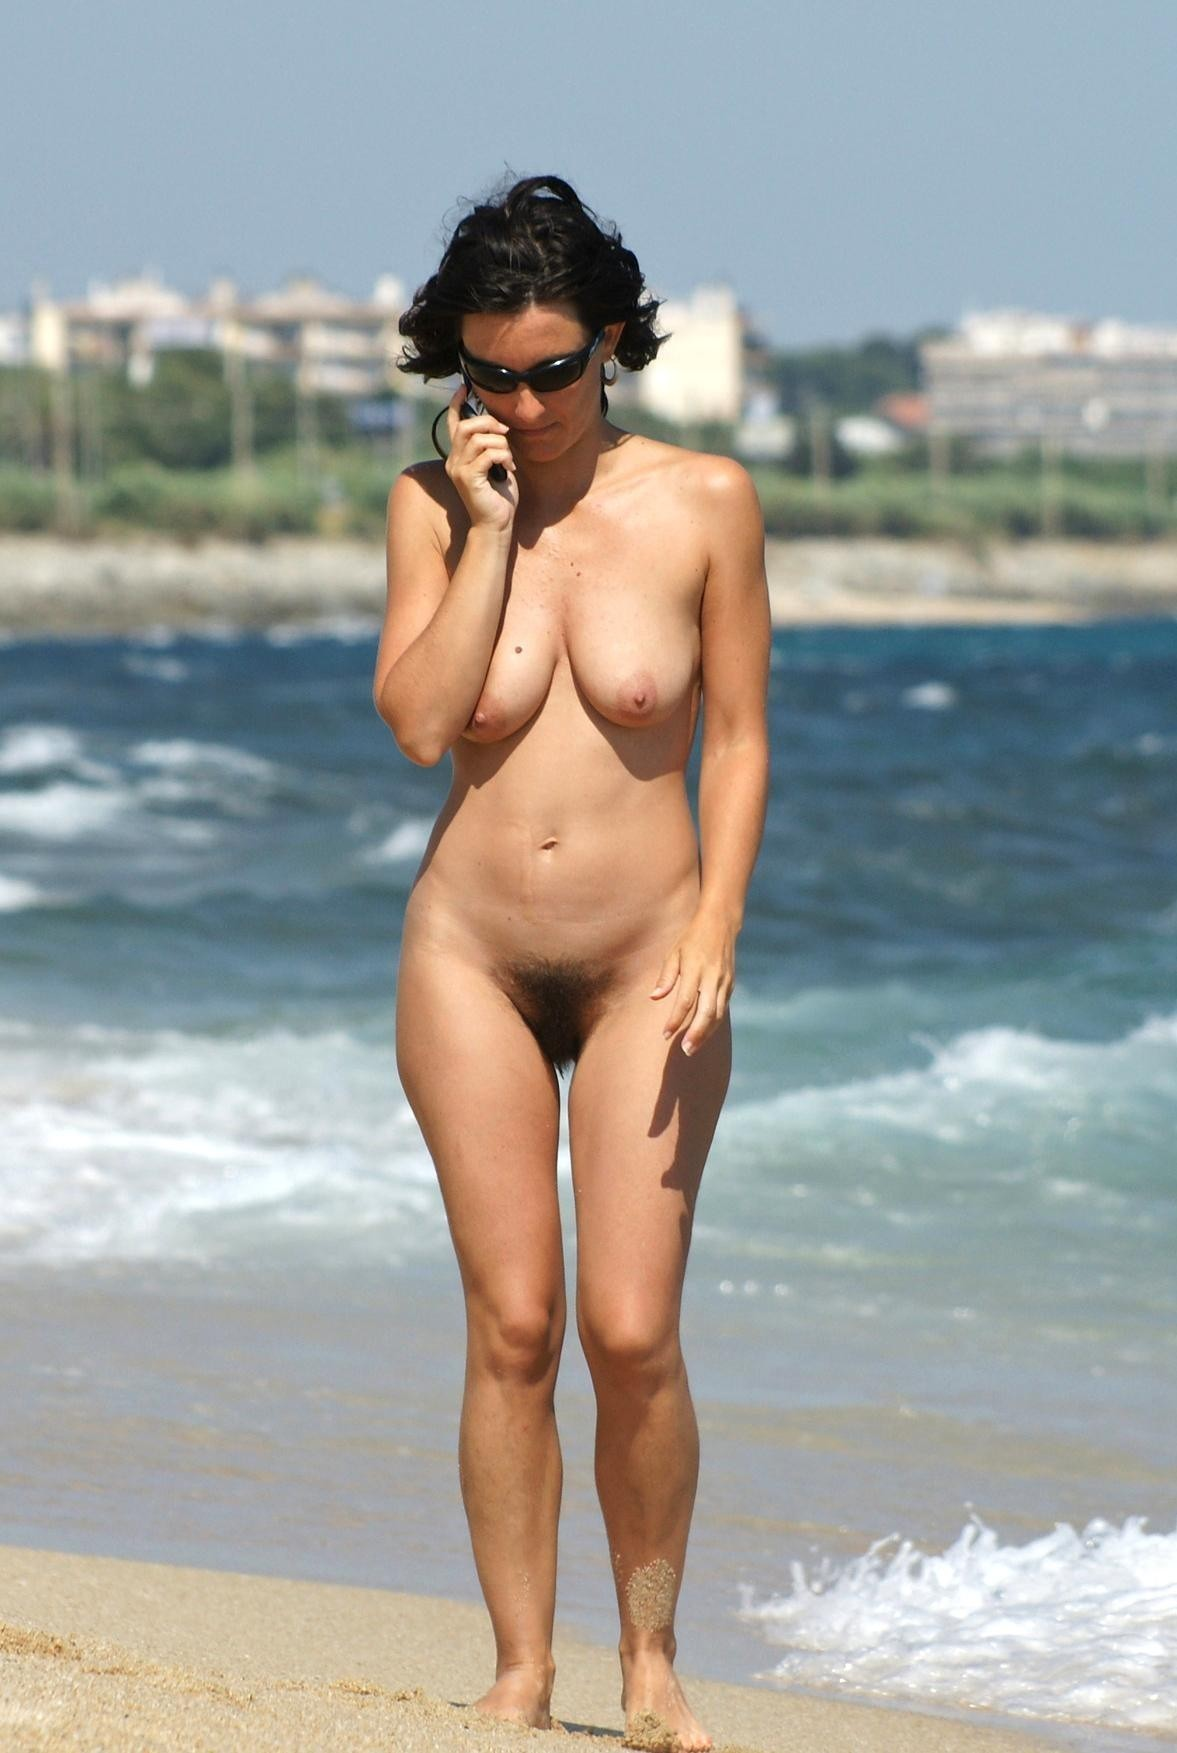 Nude beach housewives #9